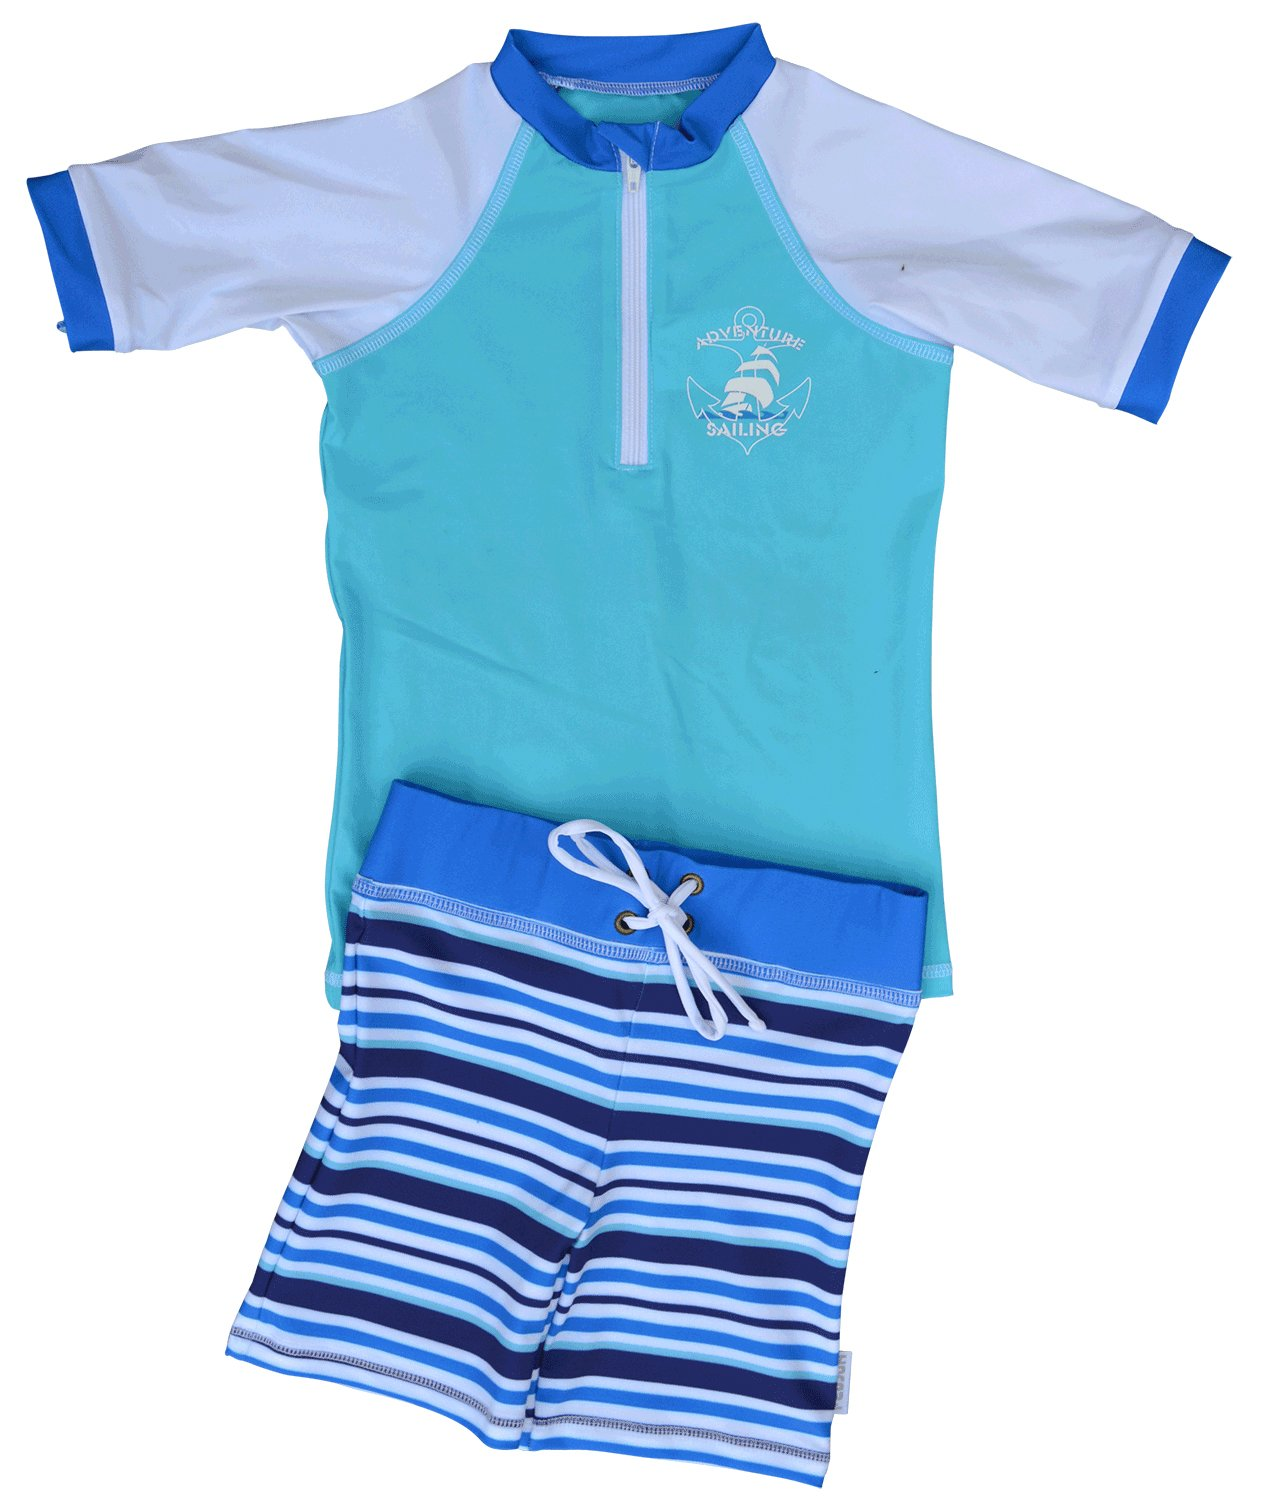 FEDJOA Little Boy's Sailing Sun Protection Swim Set Upf 50+ 5-6 Years 39-46 Lb (18-21 Kg) Blue by FEDJOA